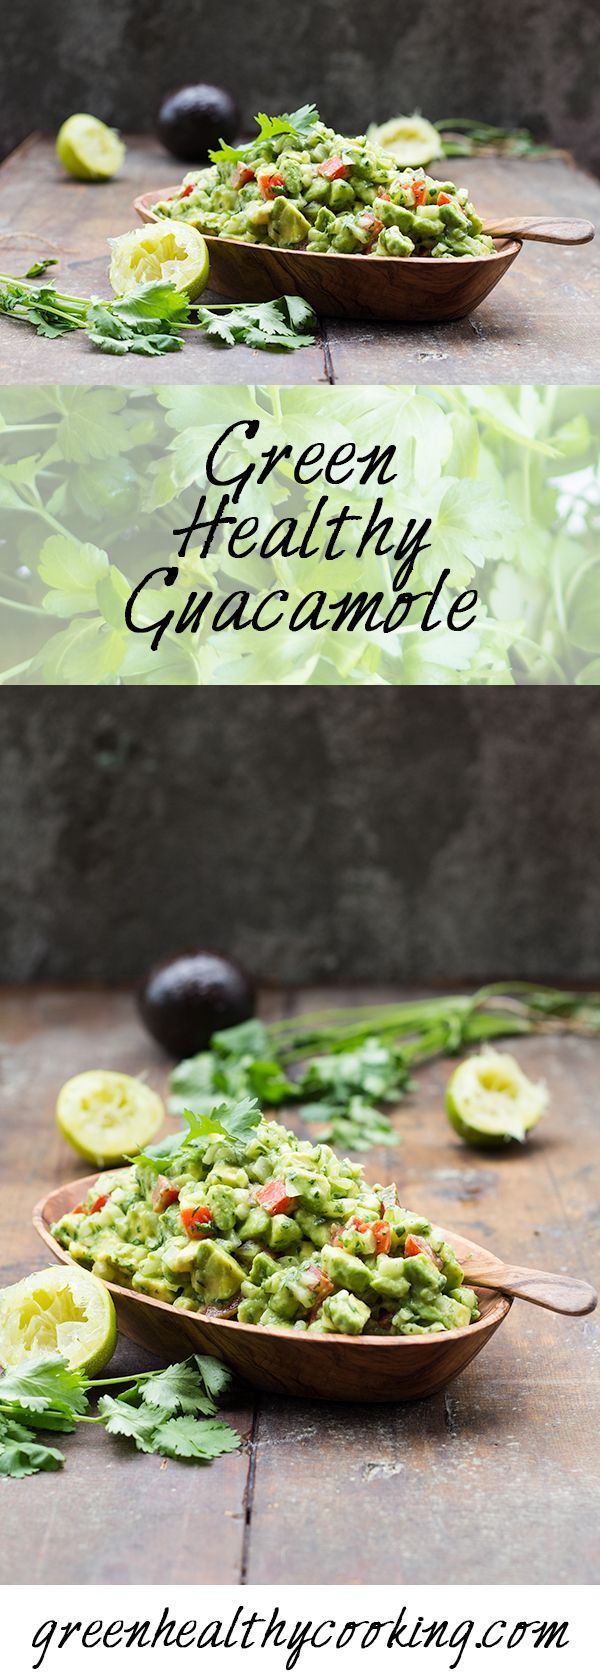 Recipe for a classic Green Healthy Guacamole to accompany whatever Mexican Food you are craving!! Tacos, Quesadillas, Sincronizadas, you name it.